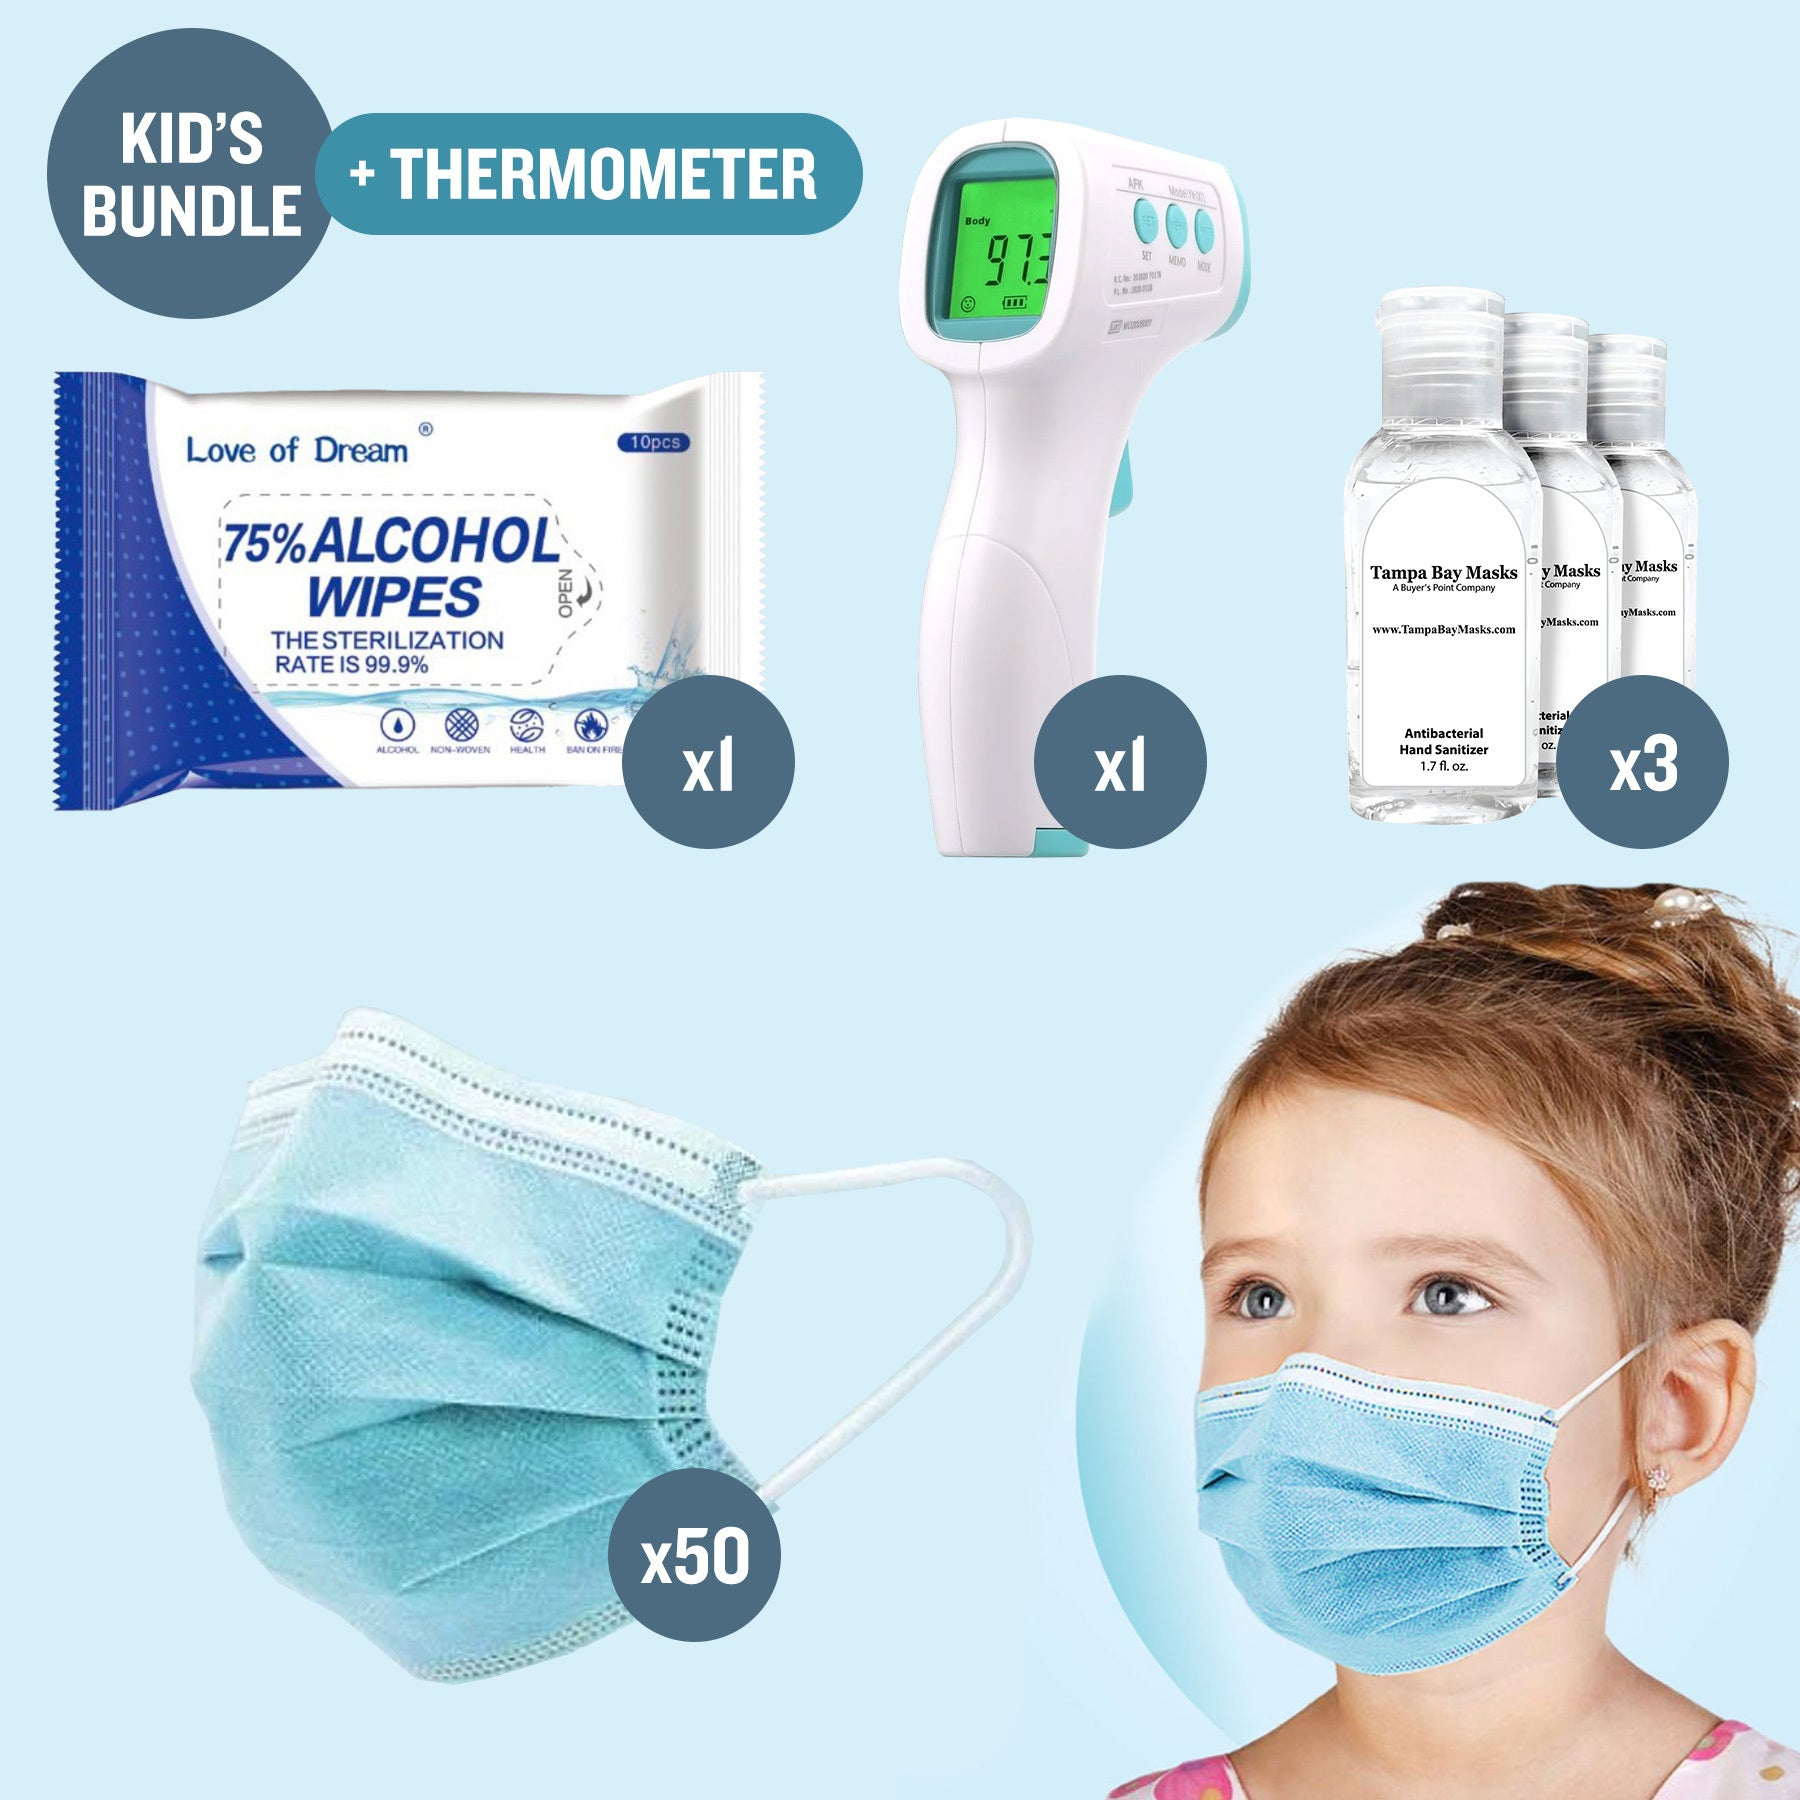 Kid Bundle + Thermometer - Free Shipping